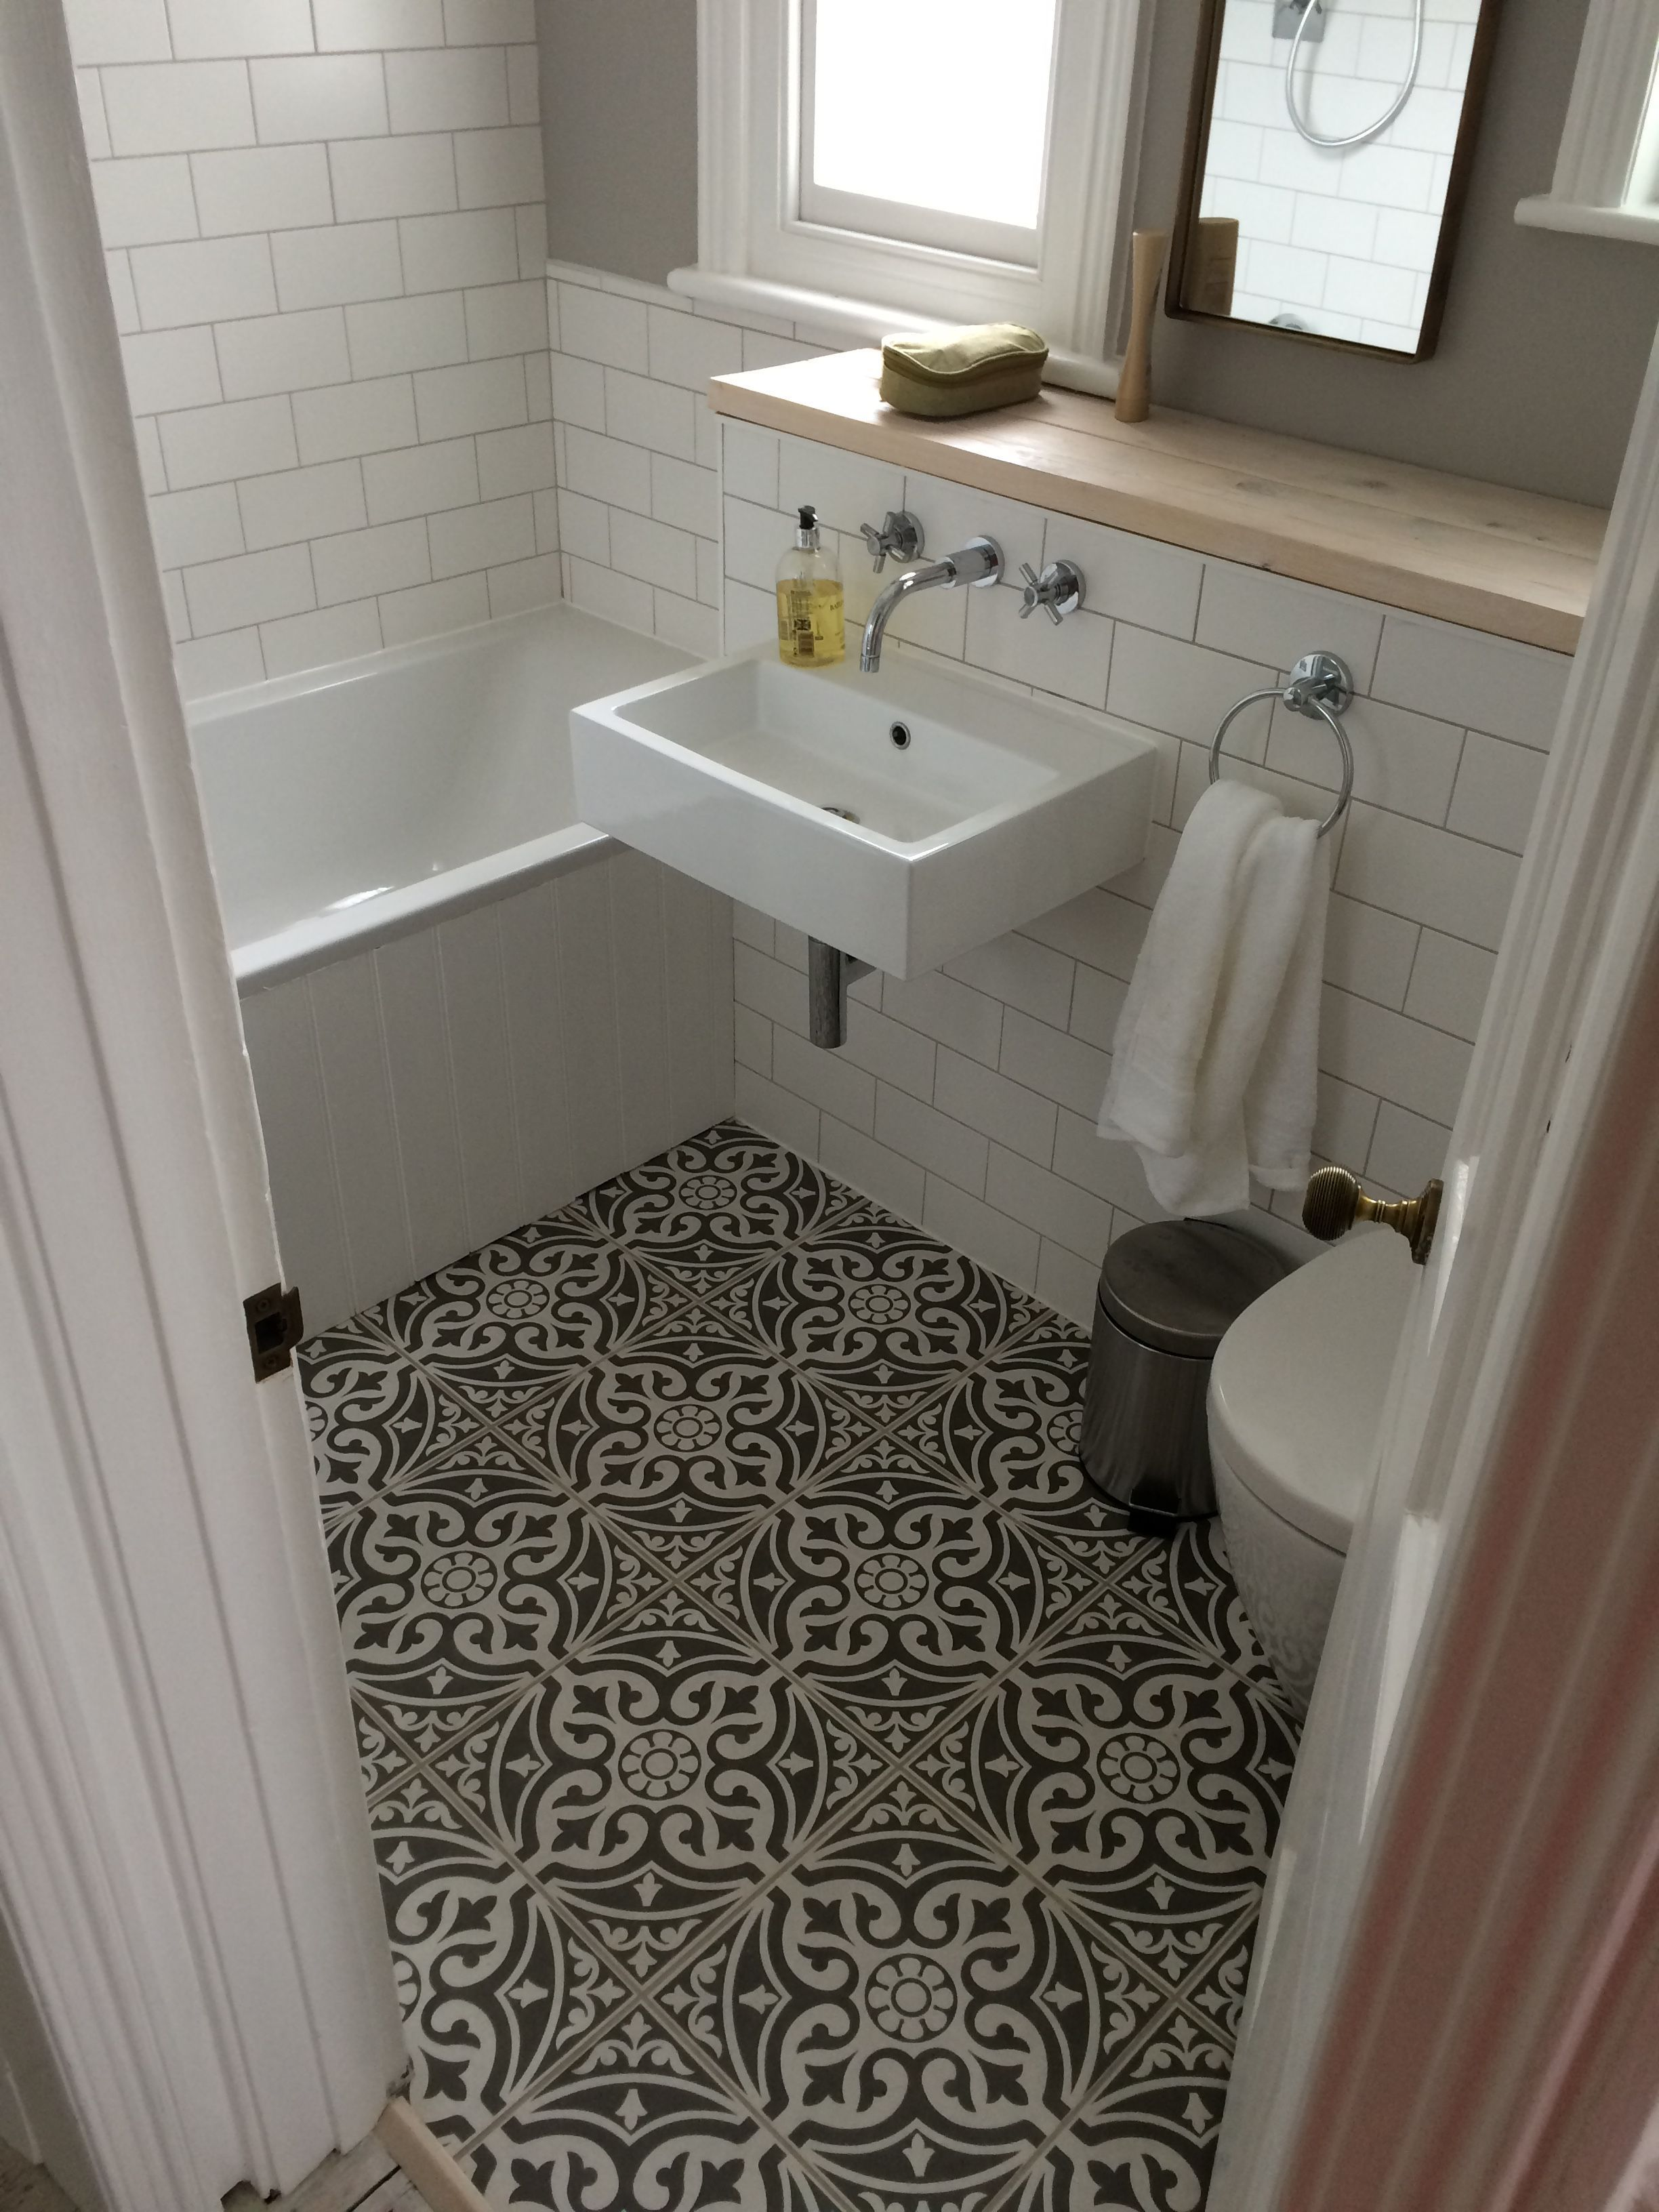 7 Top Trends and Cheap in Bathroom Tile Ideas for 2018 | Tile ideas ...